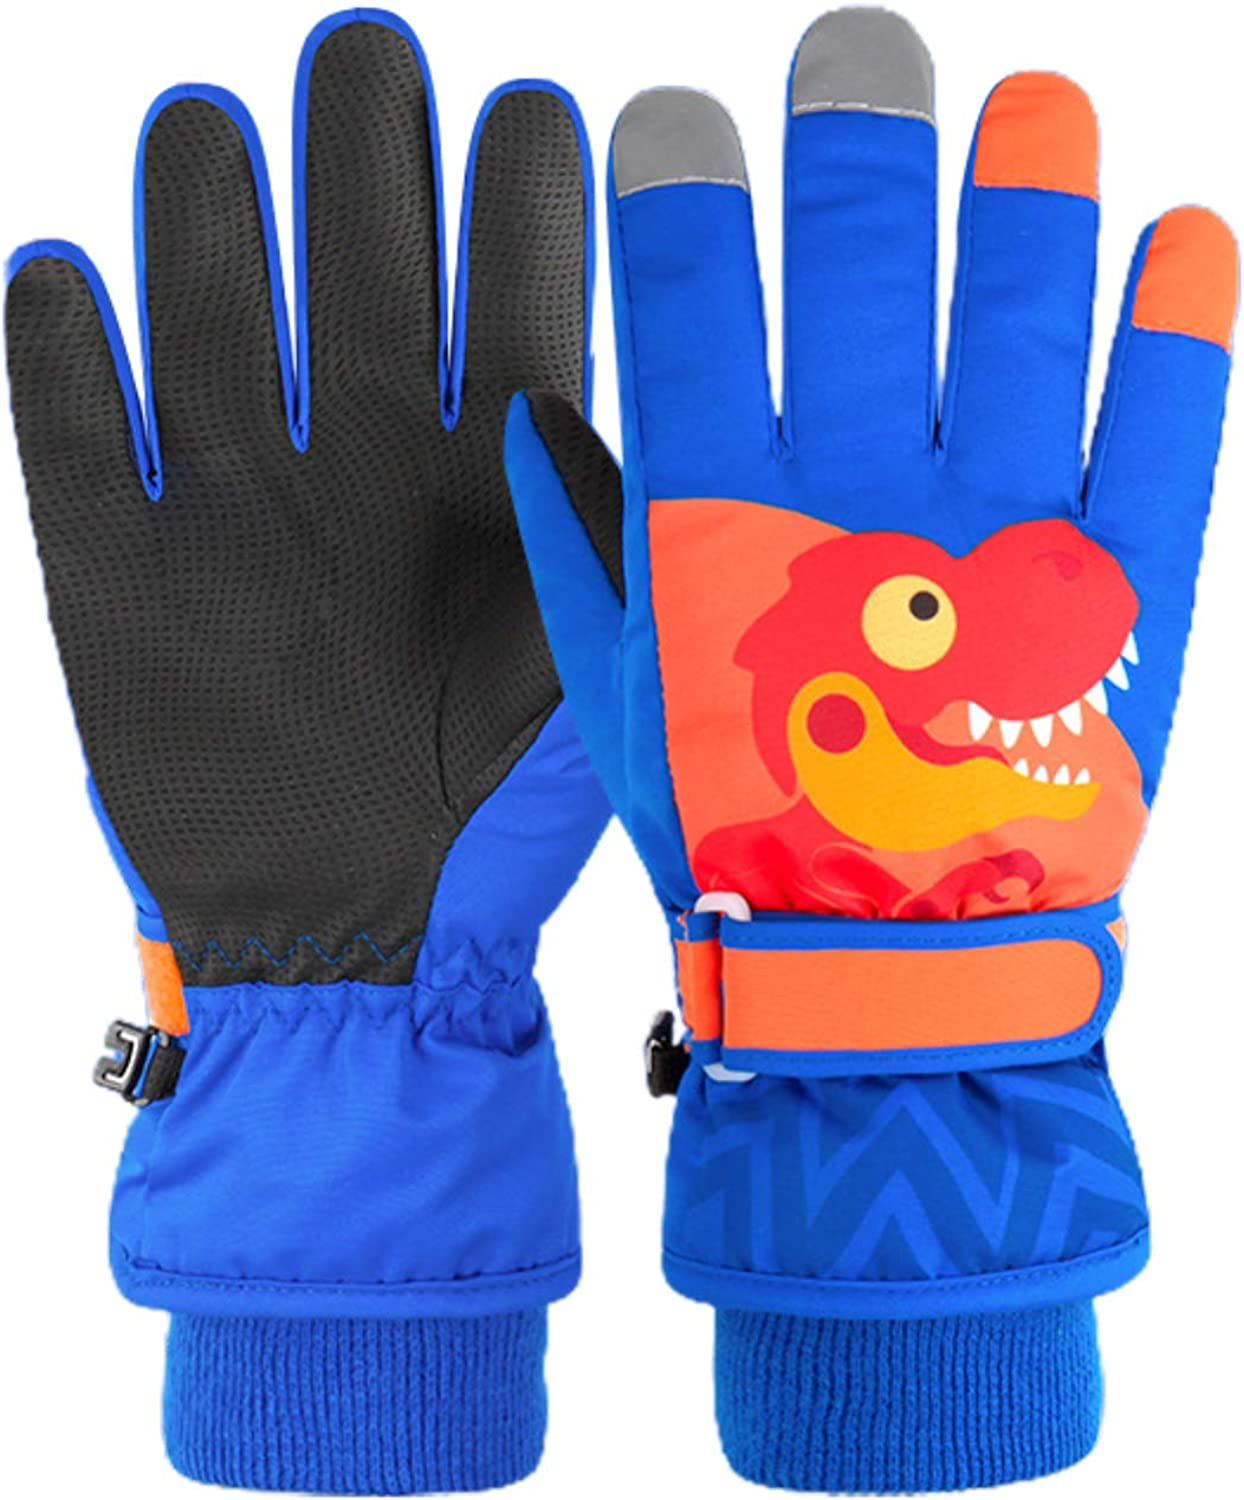 Olaf Trading Ski Waterproof Gloves Winter Velvet Thick Warm Cute Cartoon Student Riding Gloves Outdoor Cold Gloves